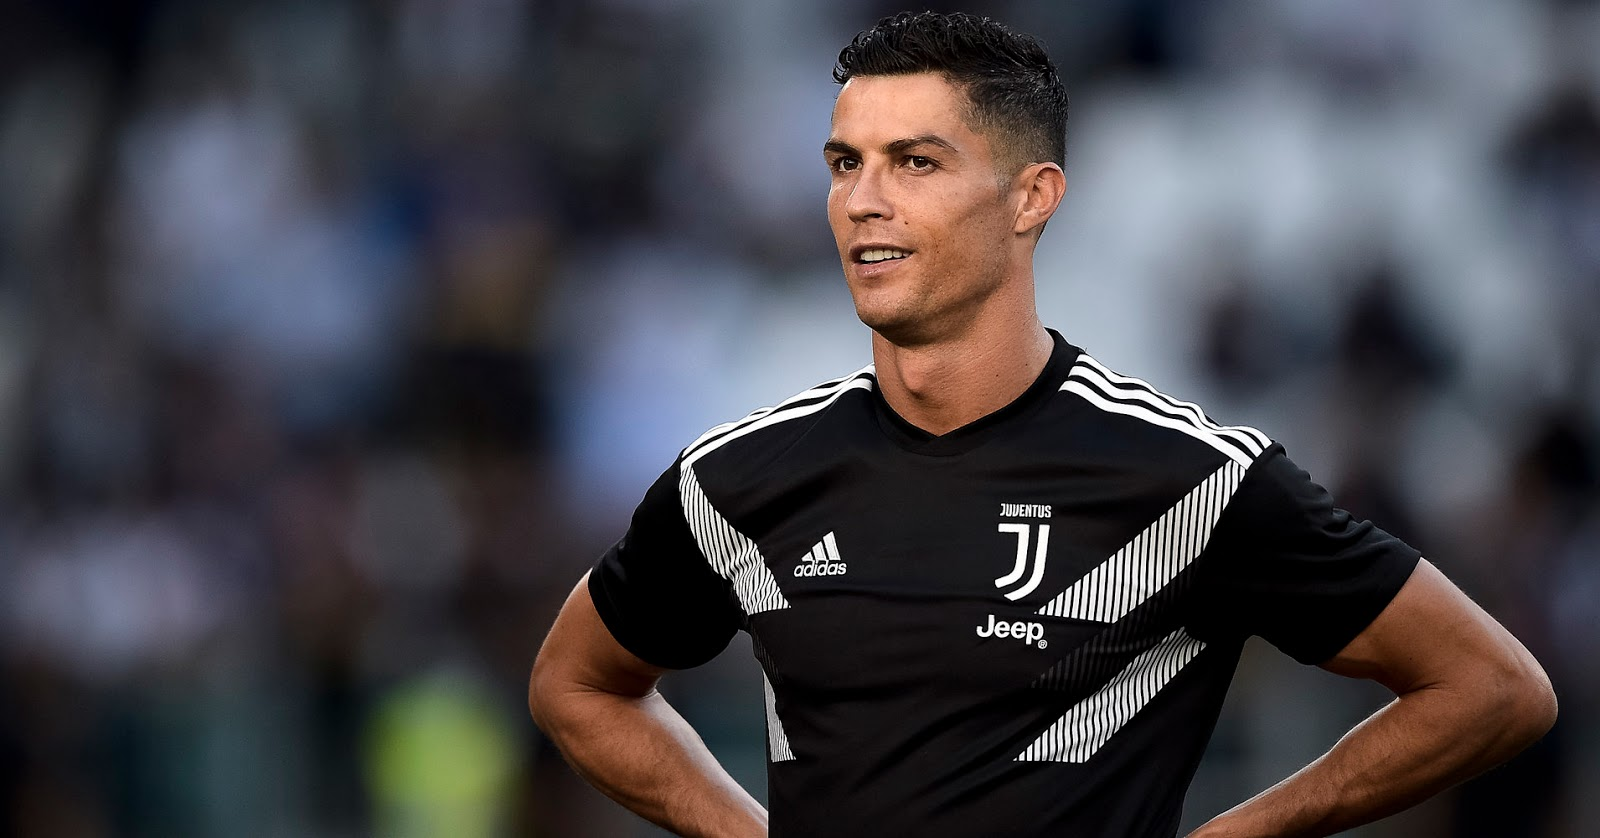 Nevada woman sues soccer star Ronaldo for alleged sexual assault